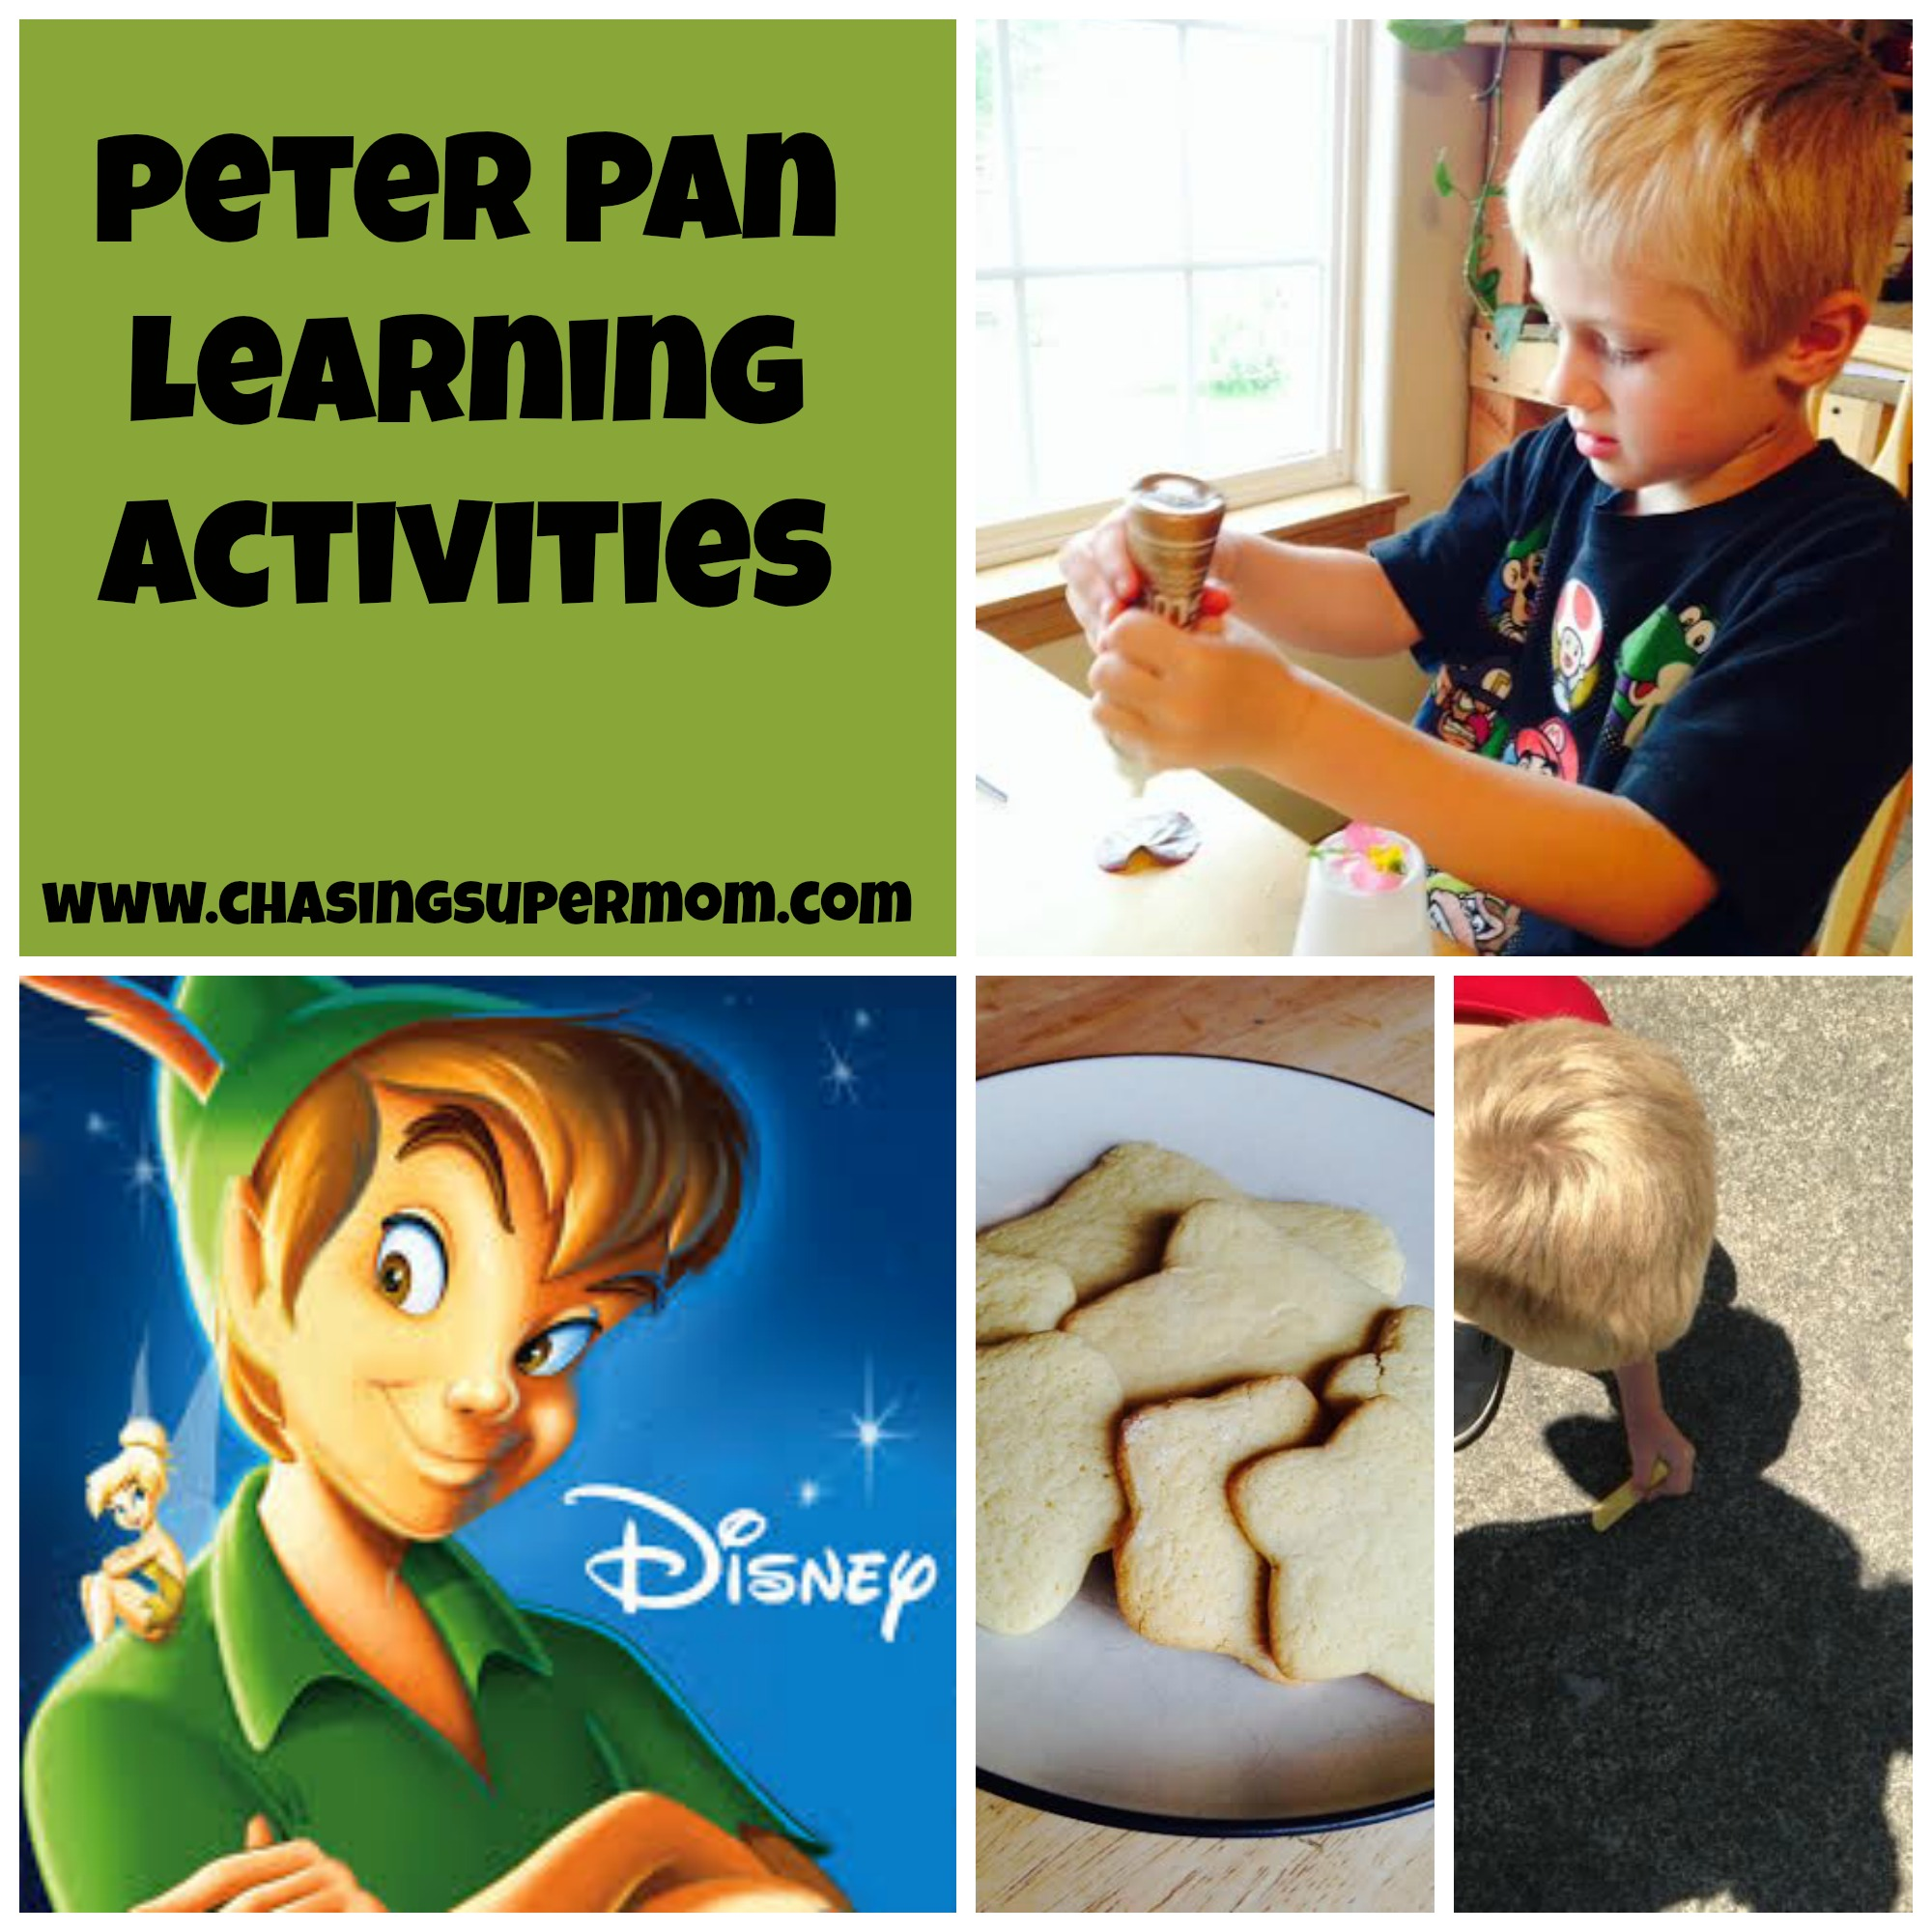 Peter Pan Learning Activities – Peter Pan Curriculum Ideas